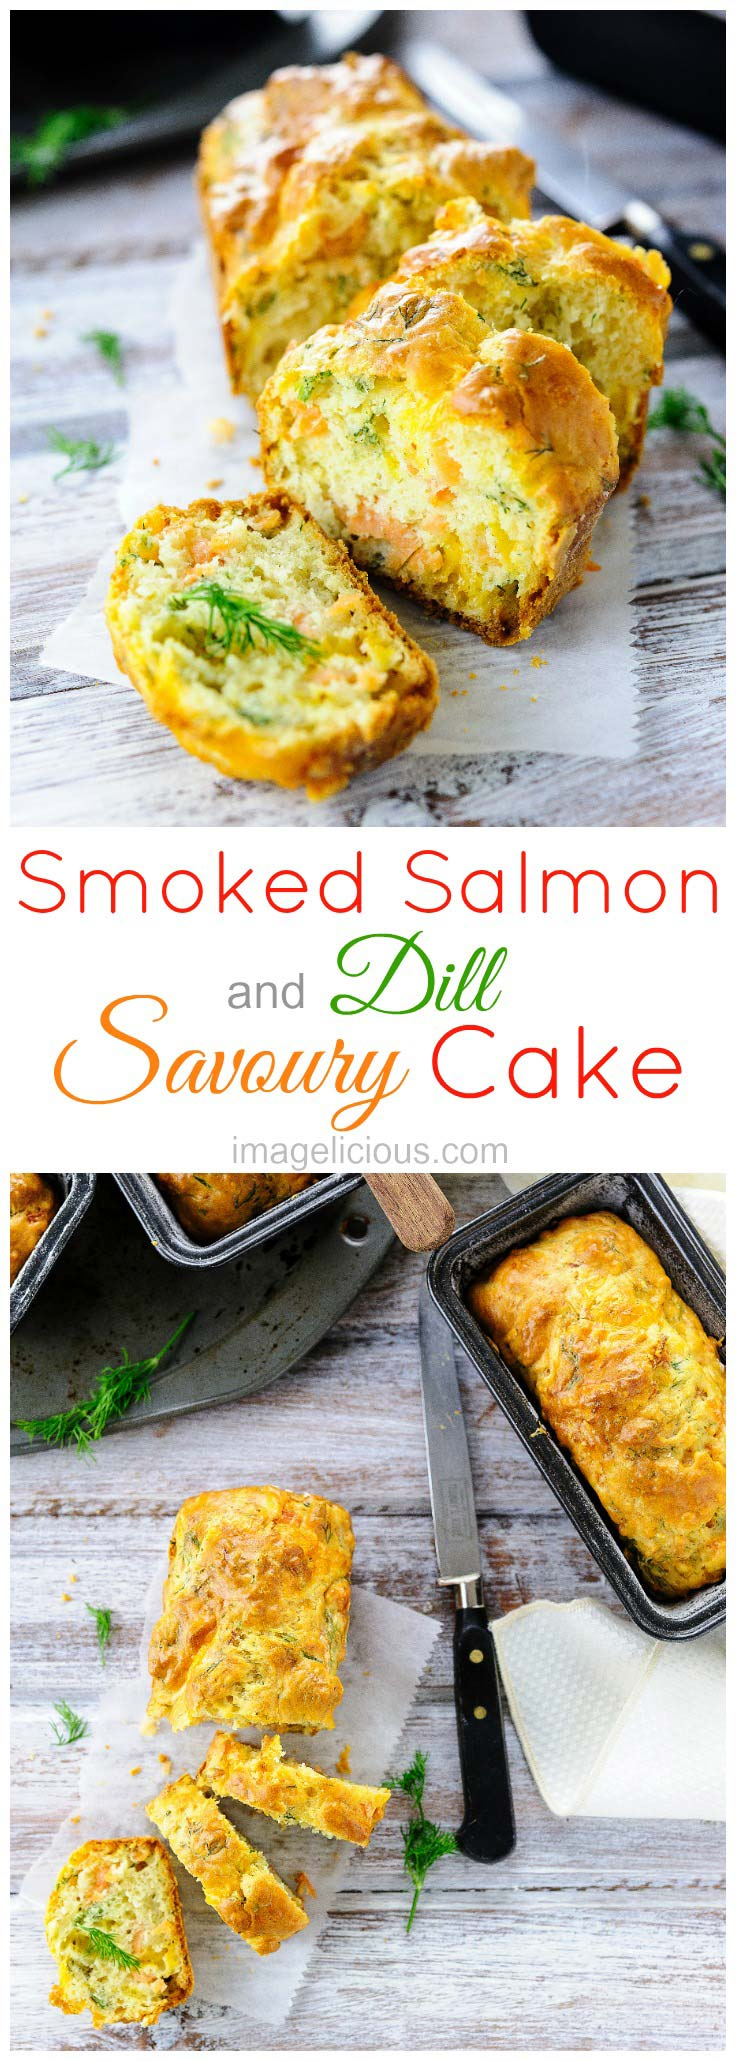 Smoked Salmon and Dill Savoury Cake is an excellent appetizer or a snack. Great to stretch a little bit of smoked salmon into an elegant and unique way. Perfect addition to a seafood platter. Delicious with a glass of wine | Imagelicious